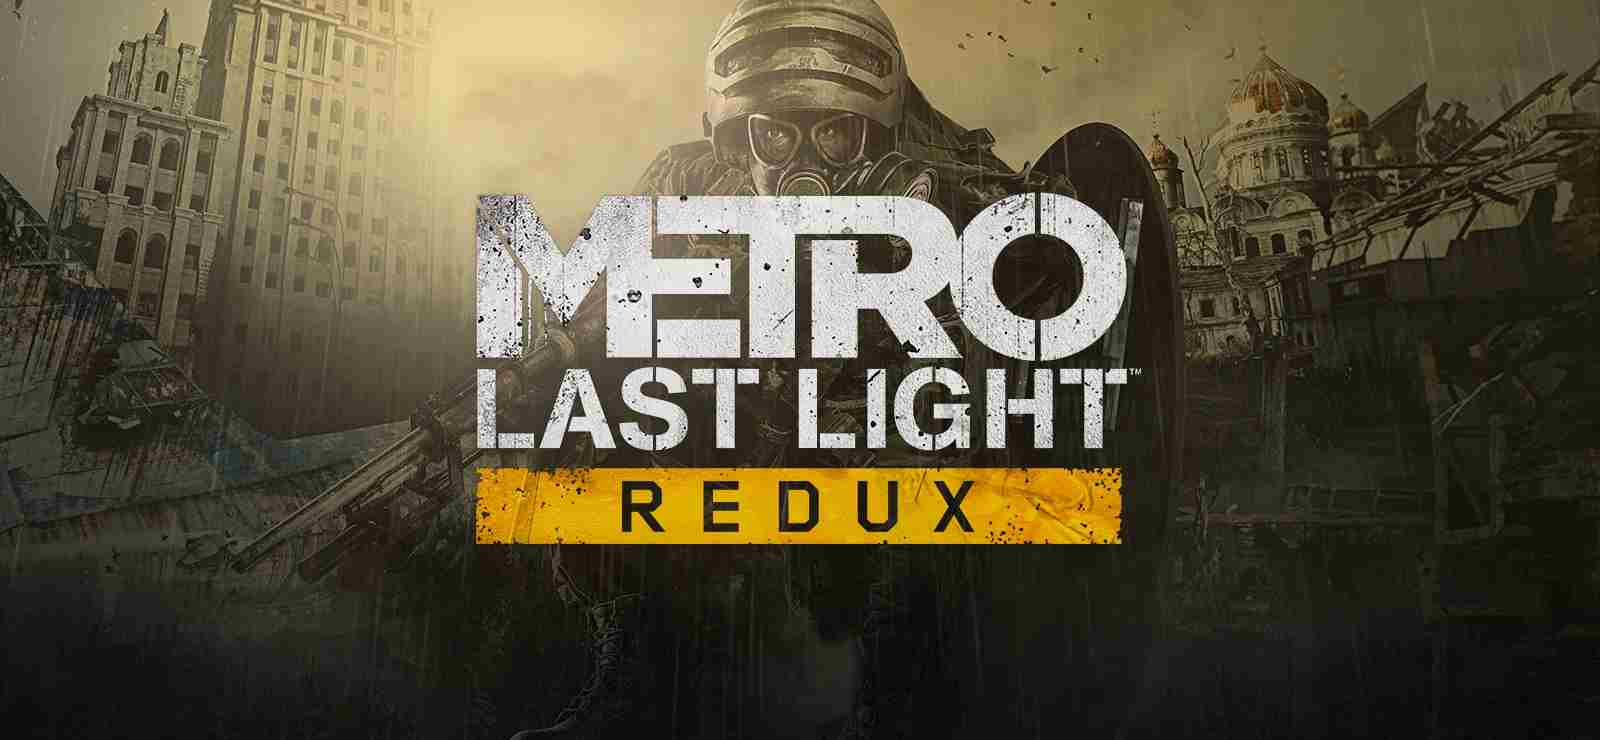 metro-last-light-redux-compressed